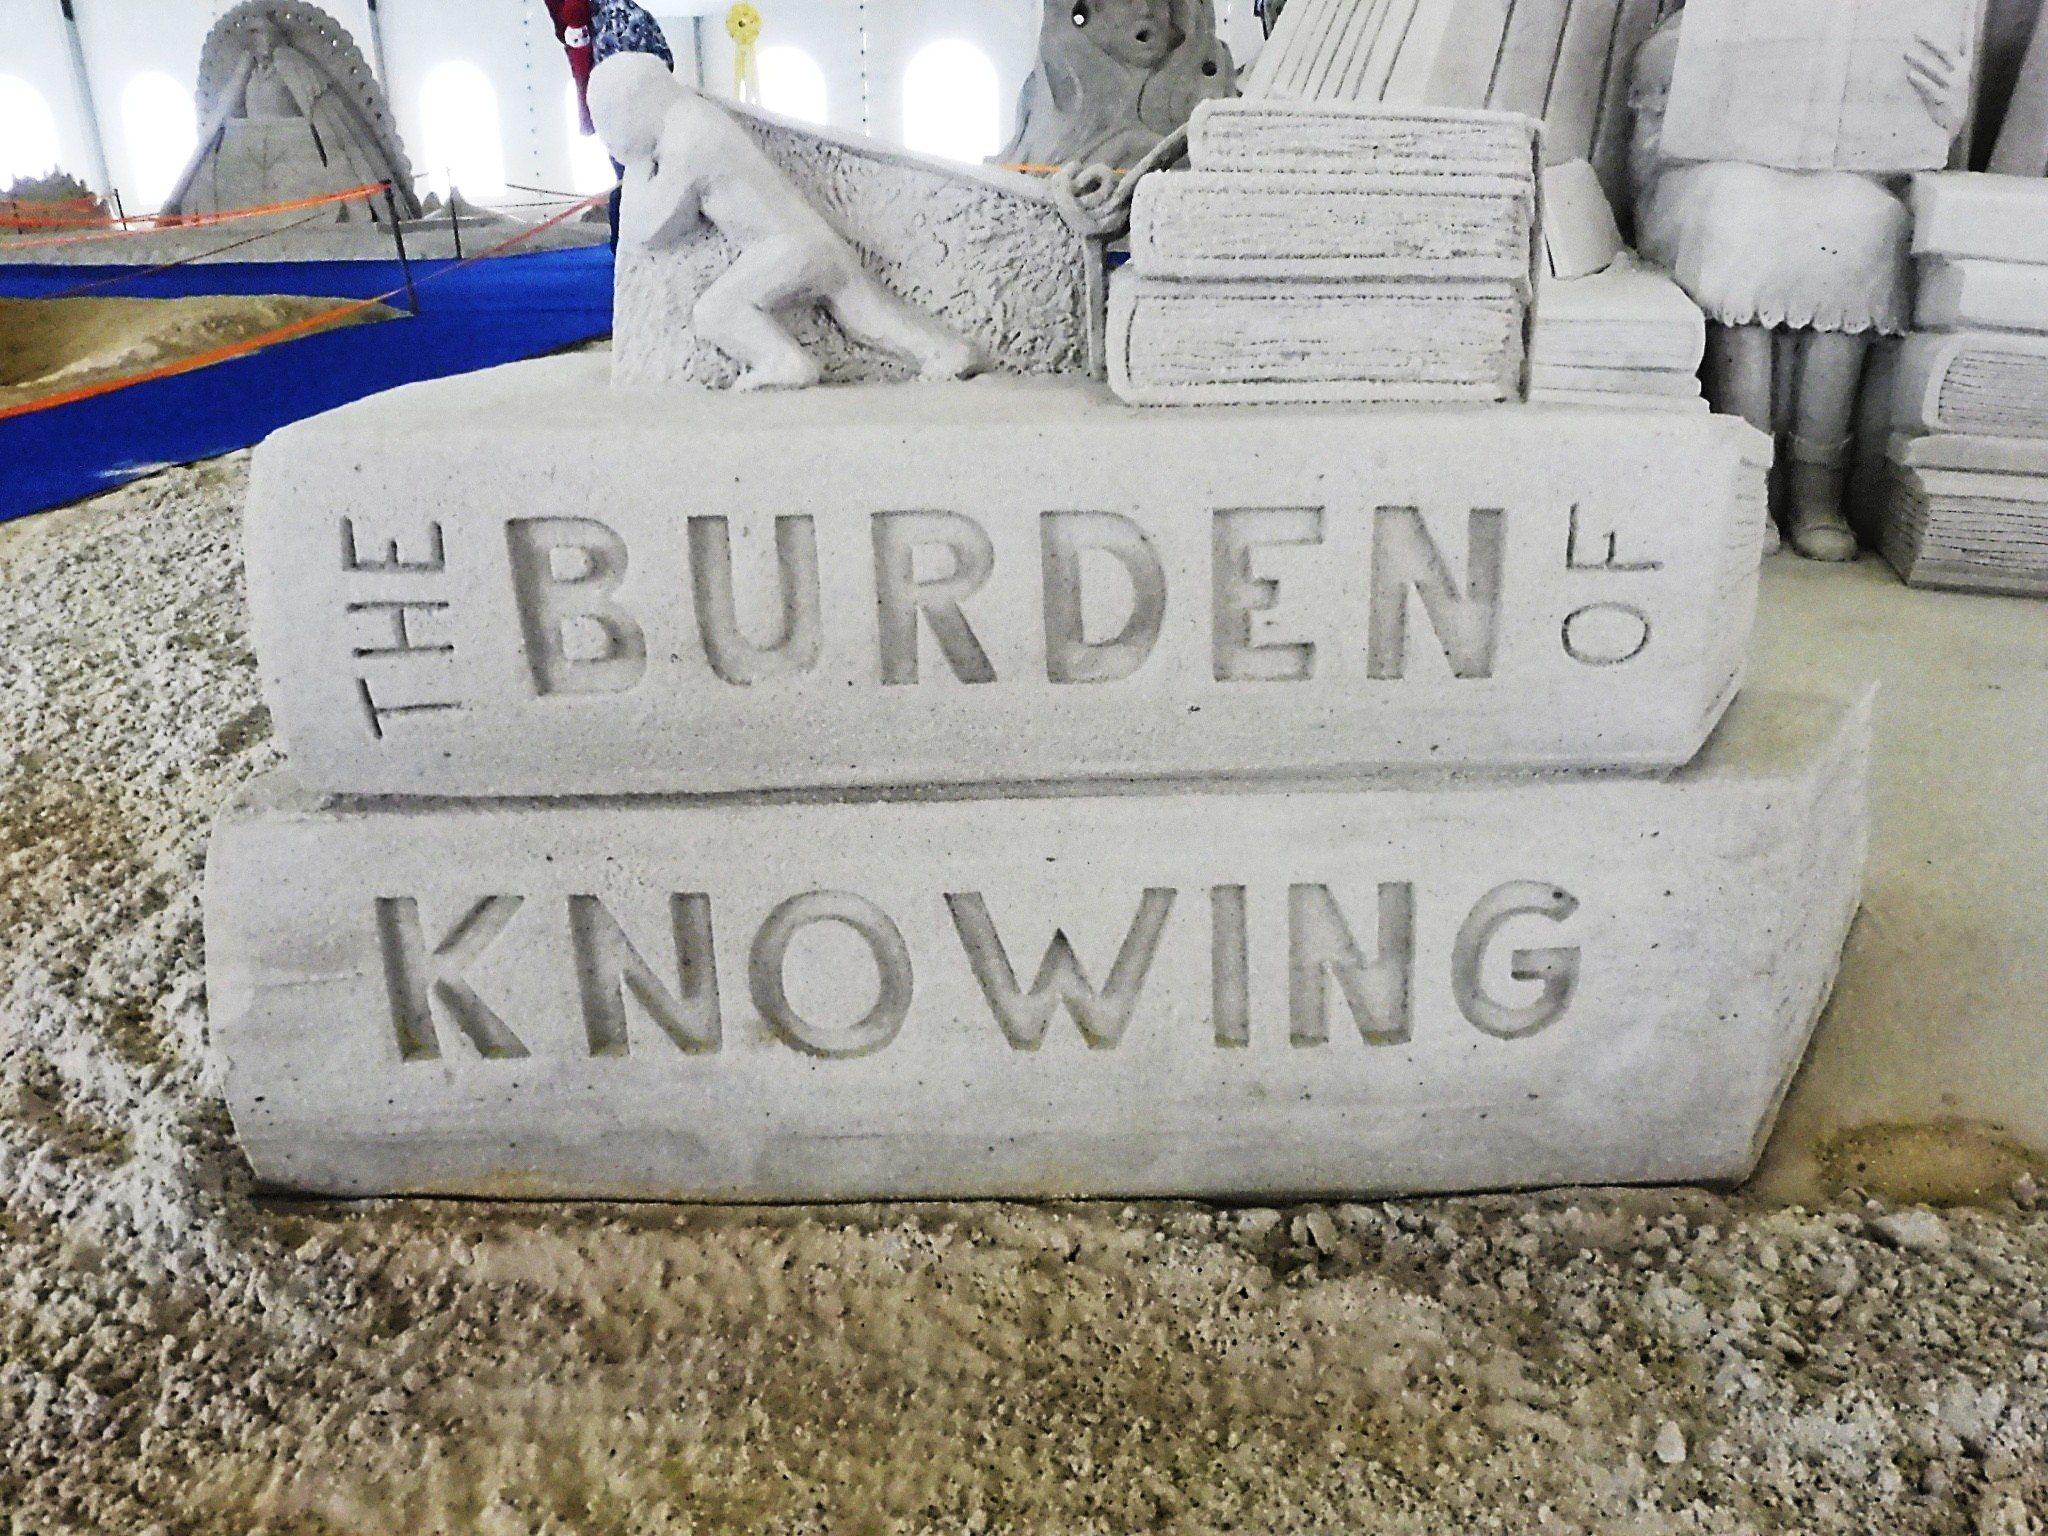 USA virginia beach the burden of knowing - close up